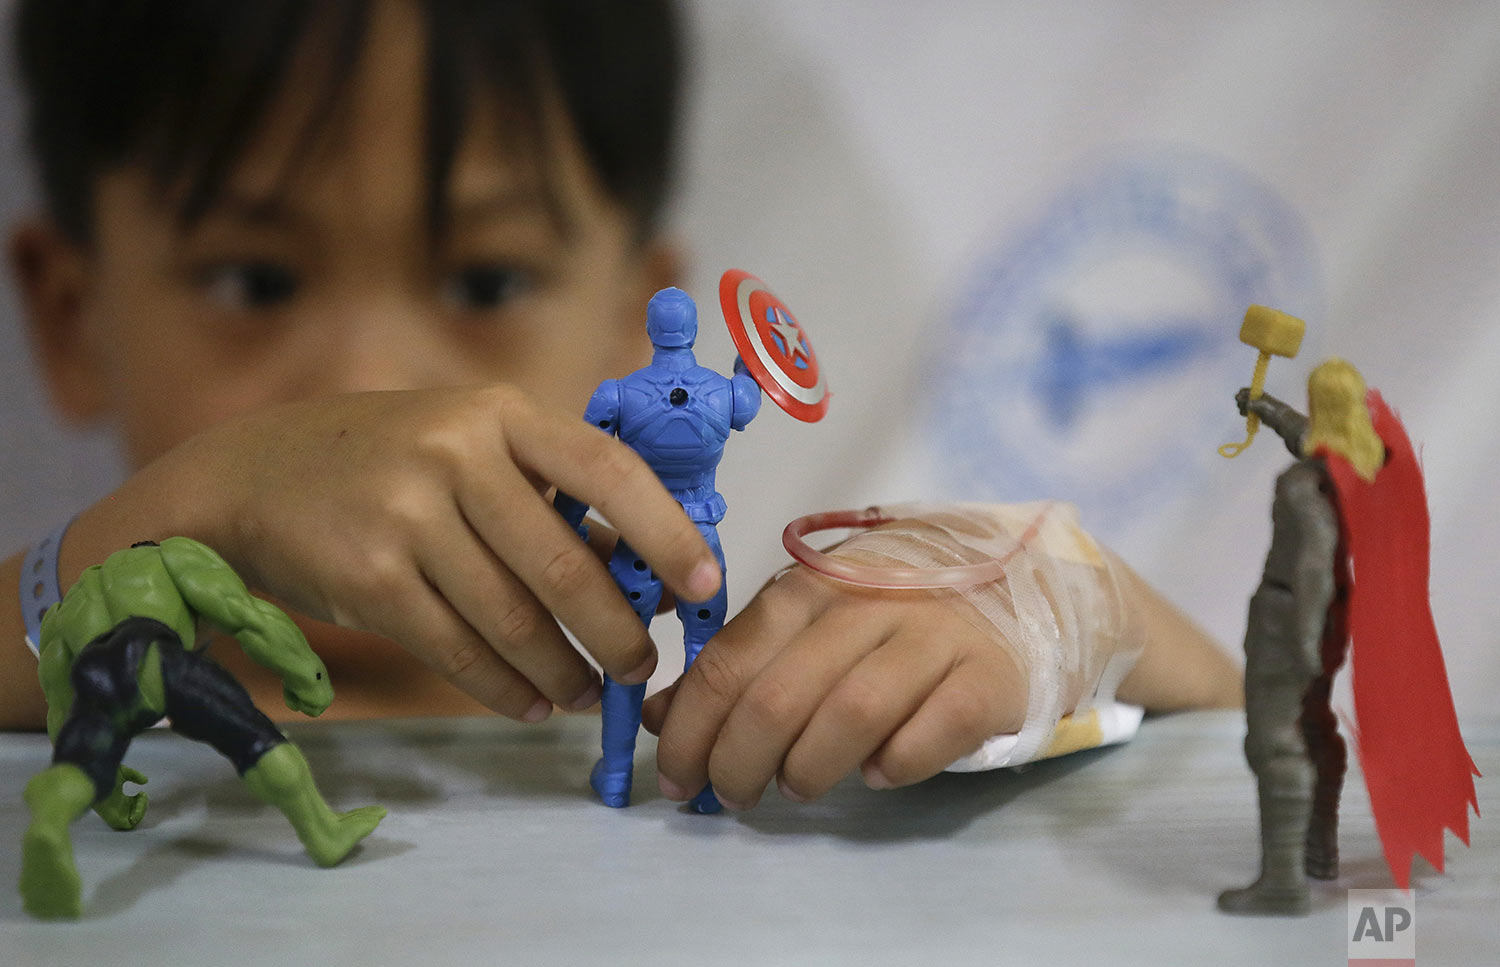 A young dengue patient plays with his action hero figurines inside his room at the San Lazaro government hospital in Manila, Philippines on Wednesday, Aug. 7, 2019. (AP Photo/Aaron Favila)